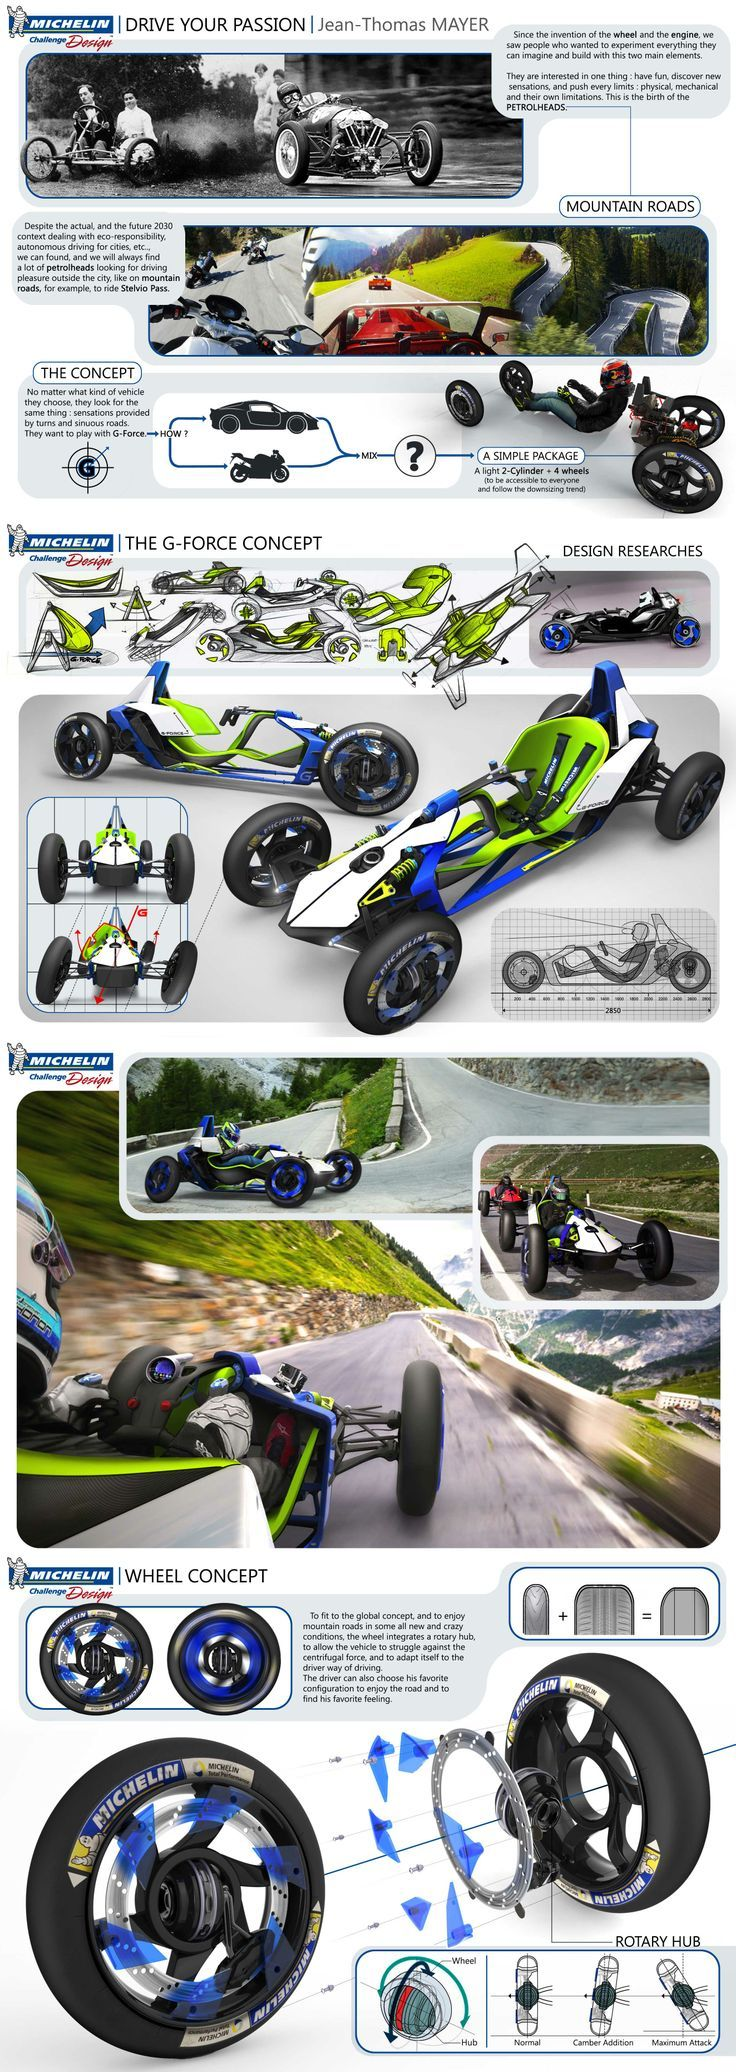 246 best Ultralights images on Pinterest | Cars, Futuristic cars and ...